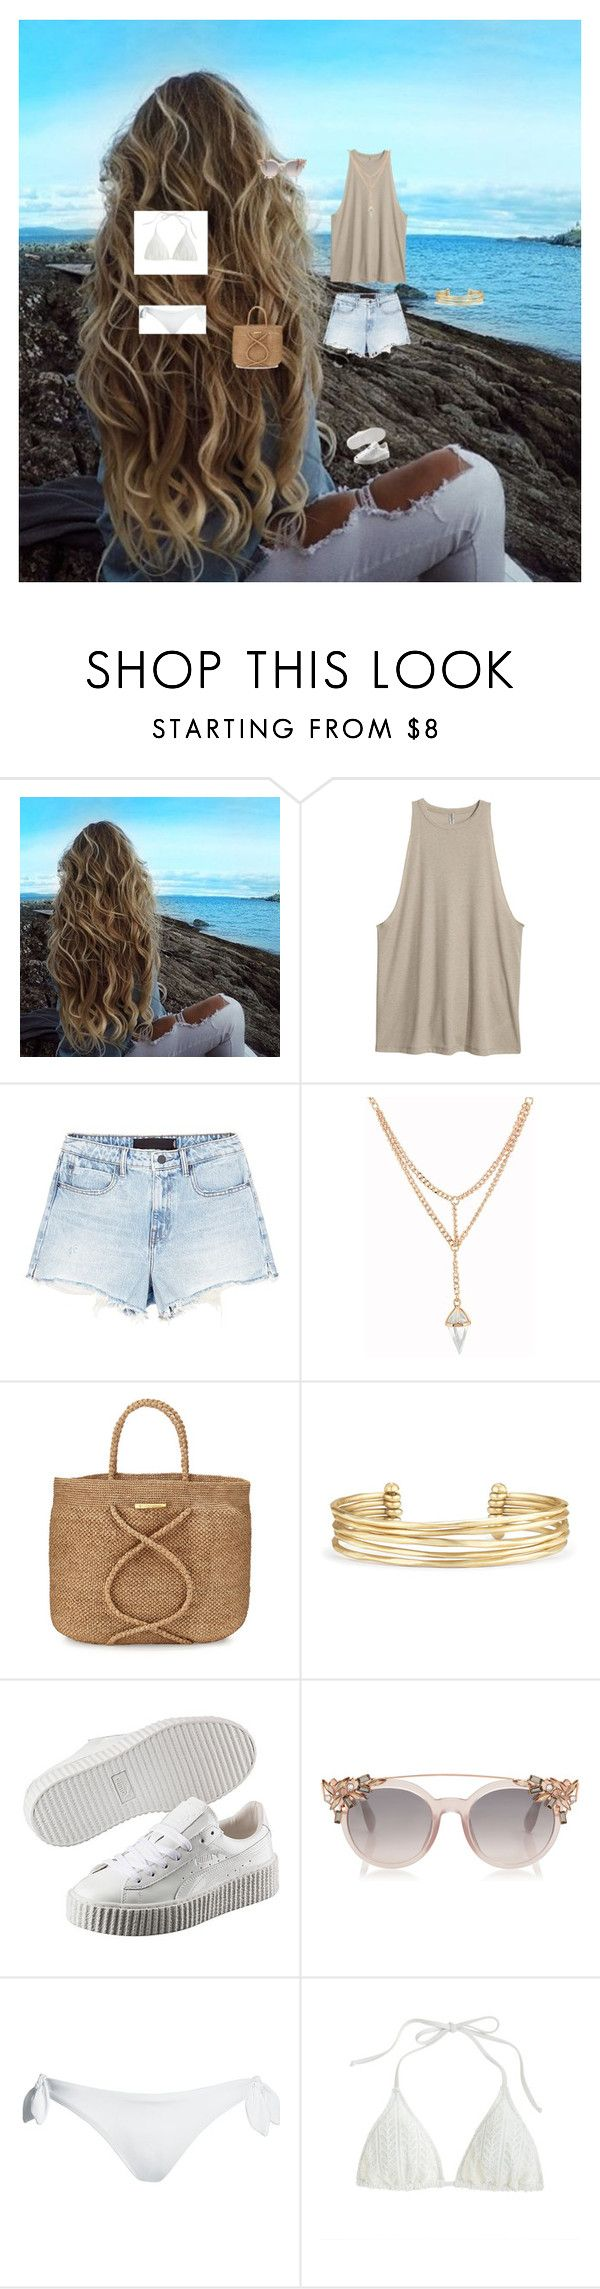 """""""beach barbecue outfit"""" by layalfirdaws on Polyvore featuring mode, Alexander Wang, ViX, Stella & Dot, Puma, Canvas by Lands' End et J.Crew"""